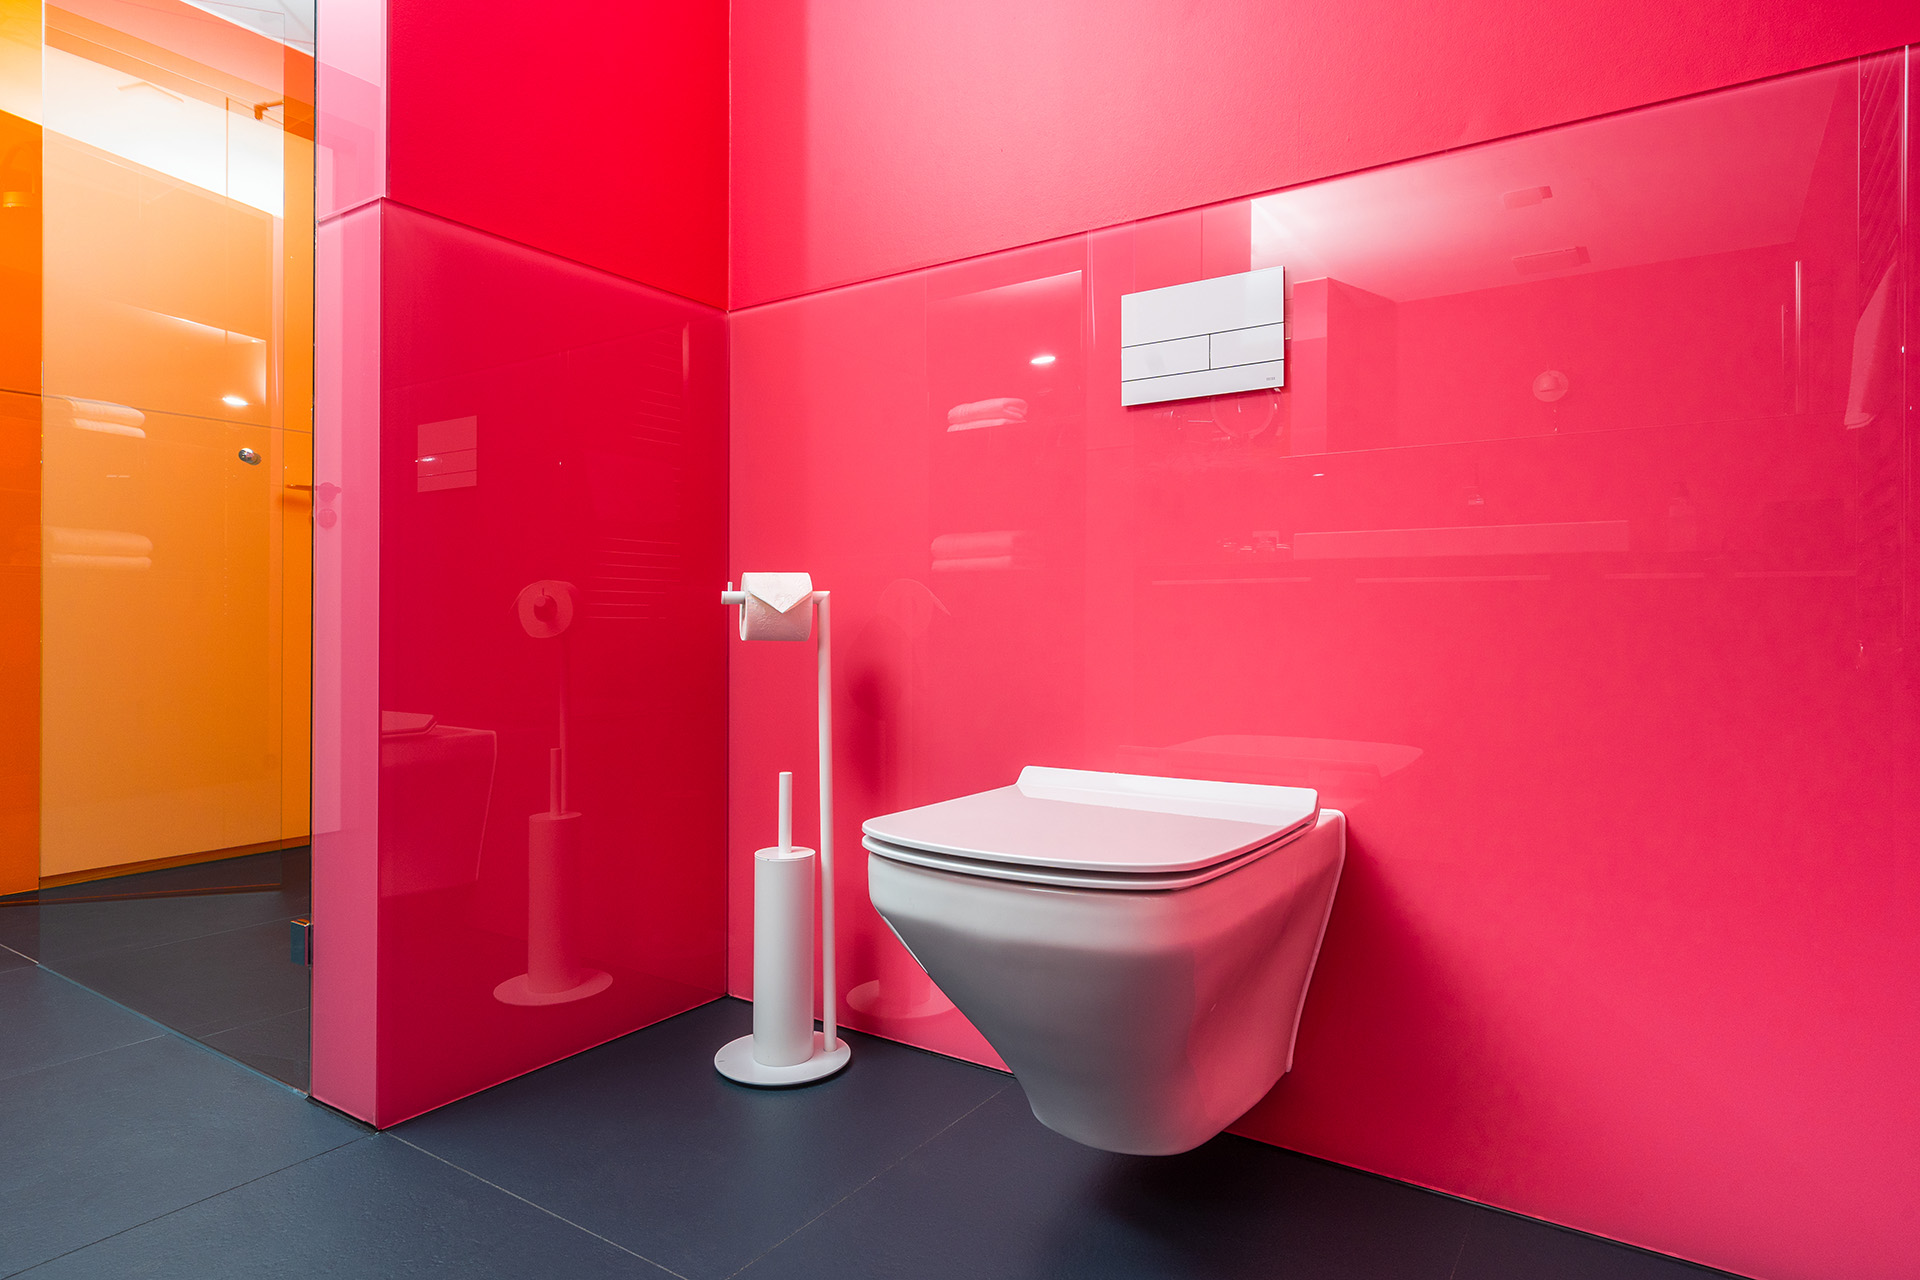 In glossy white, the TECEsquare II toilet flush plate appears here as an independent character that sets a cheeky highlight on the red wall.